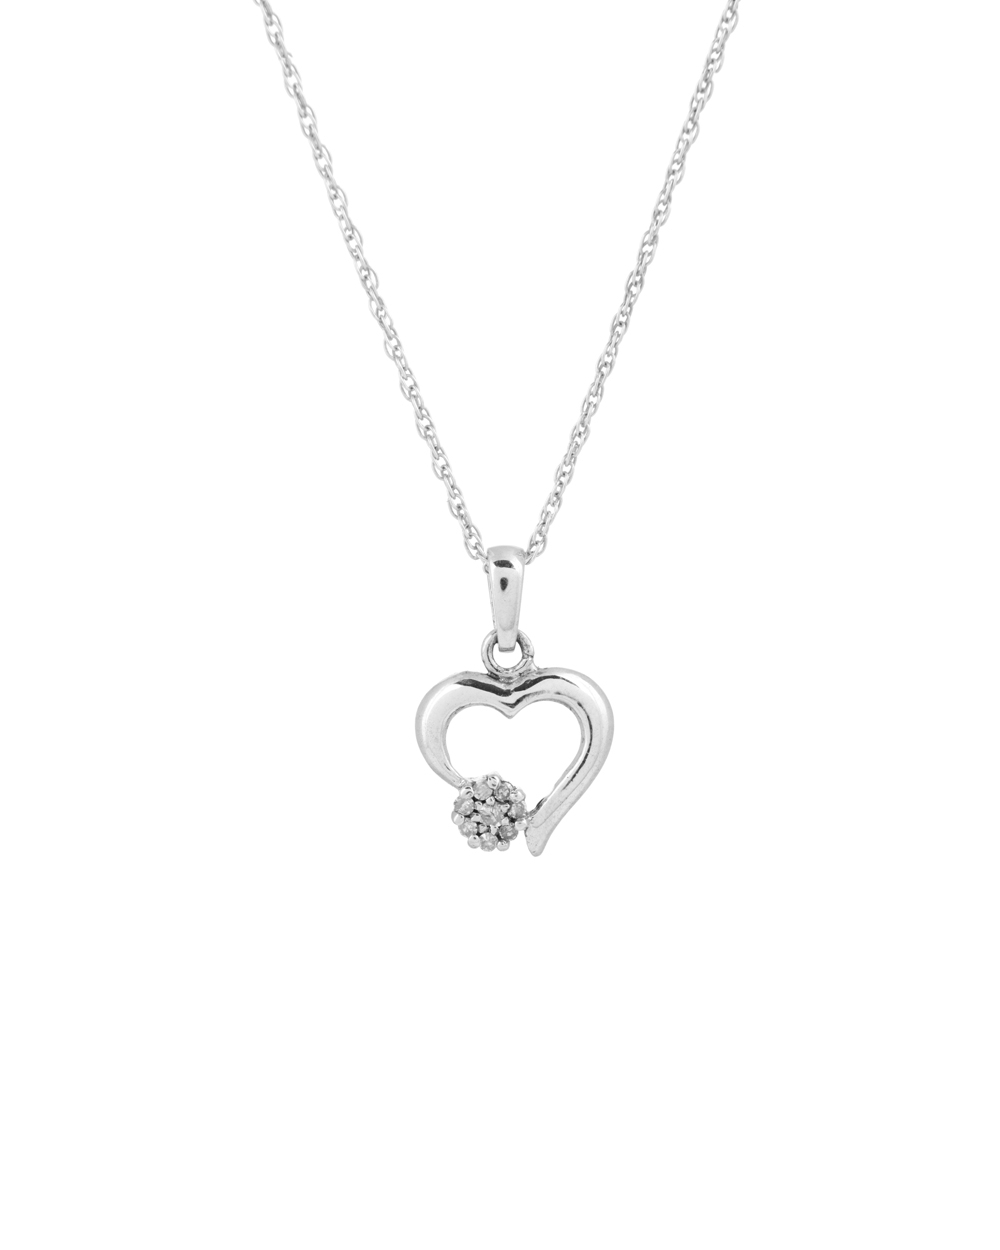 1000x1250 Buy Elegant 925 Sterling Silver Heart Shaped Diamond Pendant